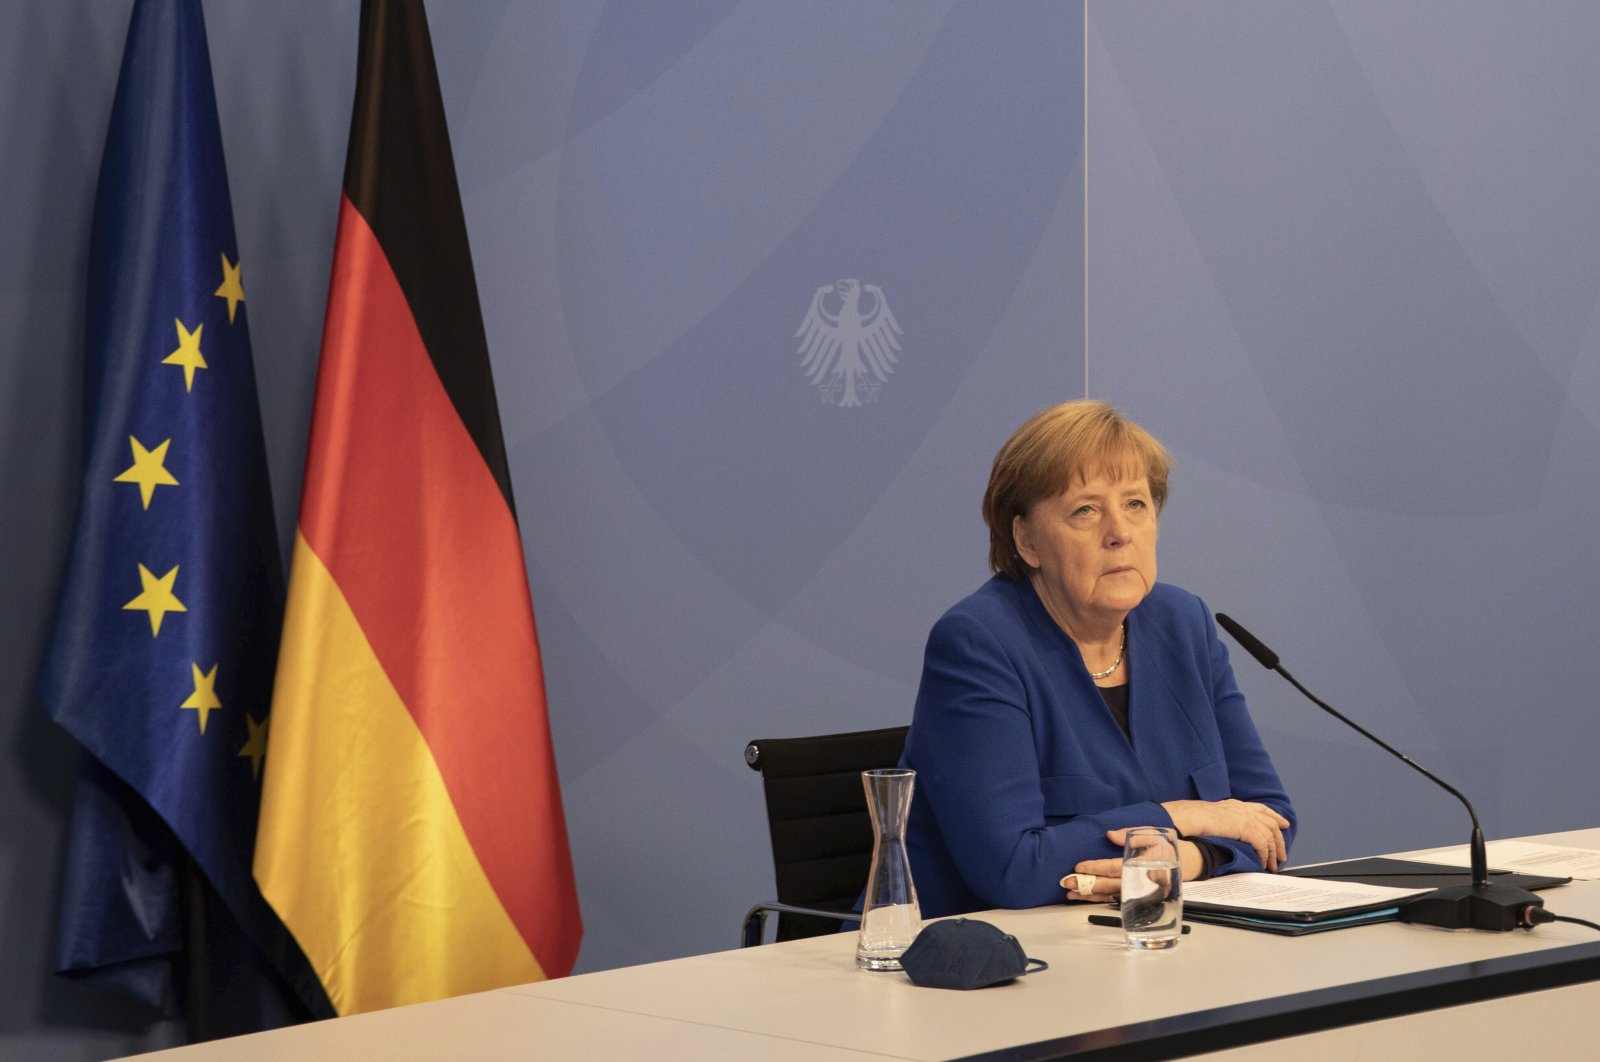 German Chancellor Angela Merkel attends the 12th meeting of the Petersberg Climate Dialogue conference held virtually in Berlin, Germany, May 6, 2021. (AP Photo)